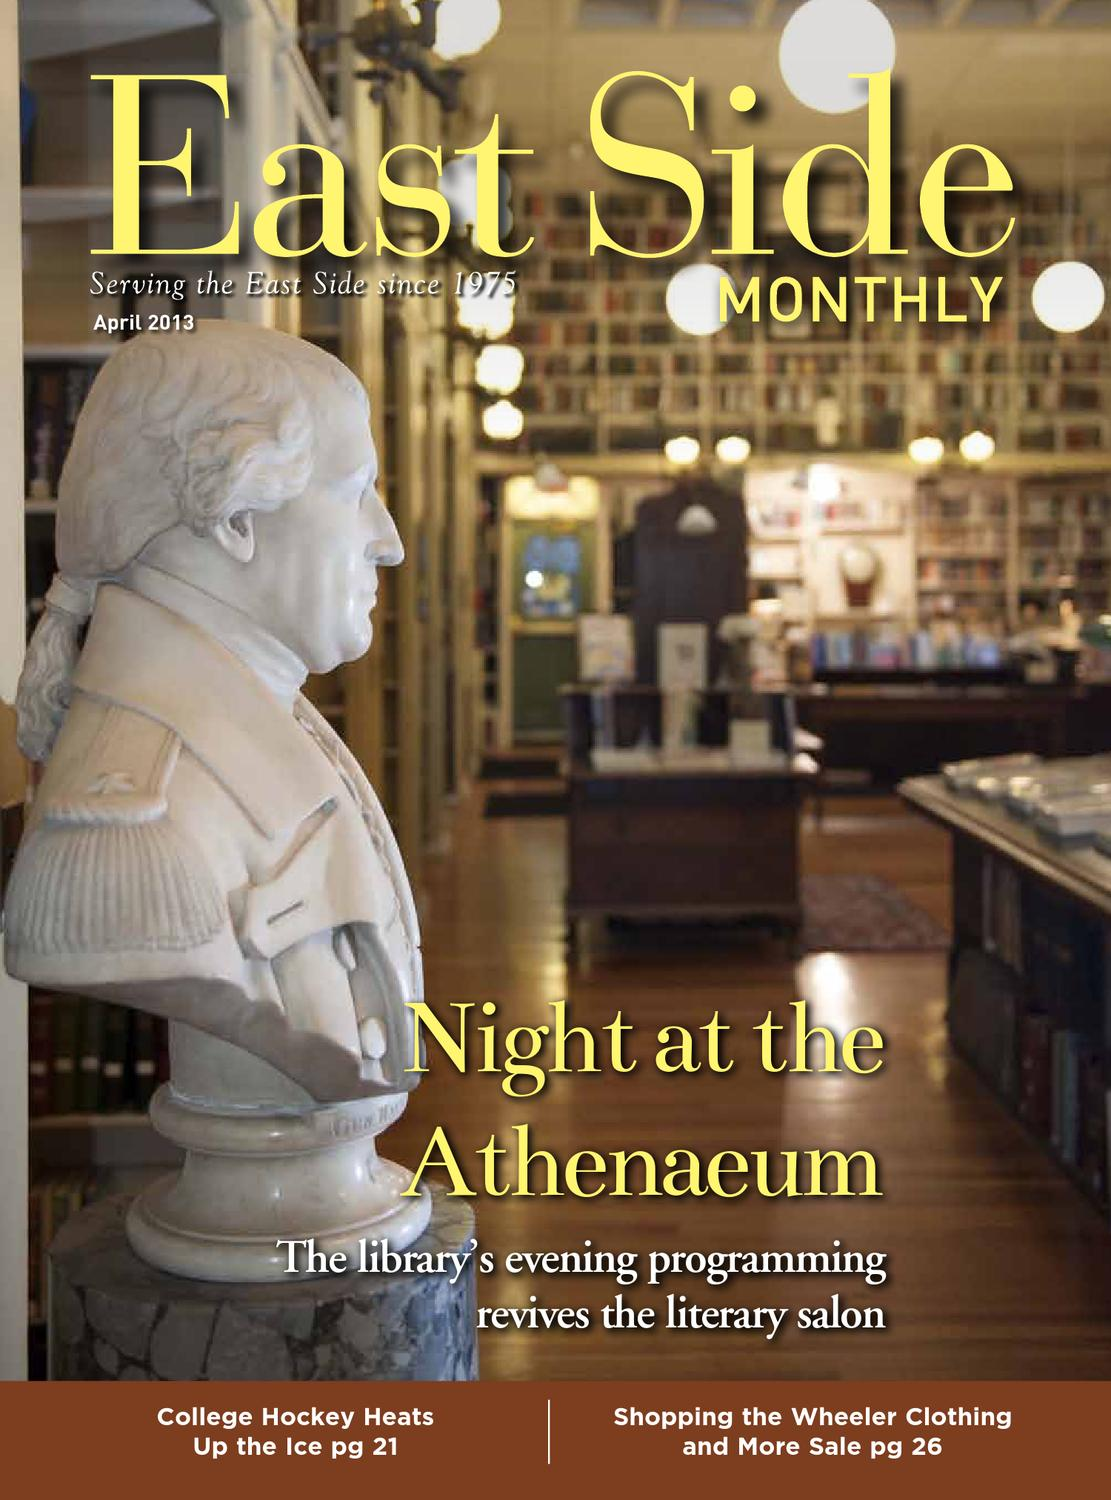 East side monthly august 2013 by providence media   issuu